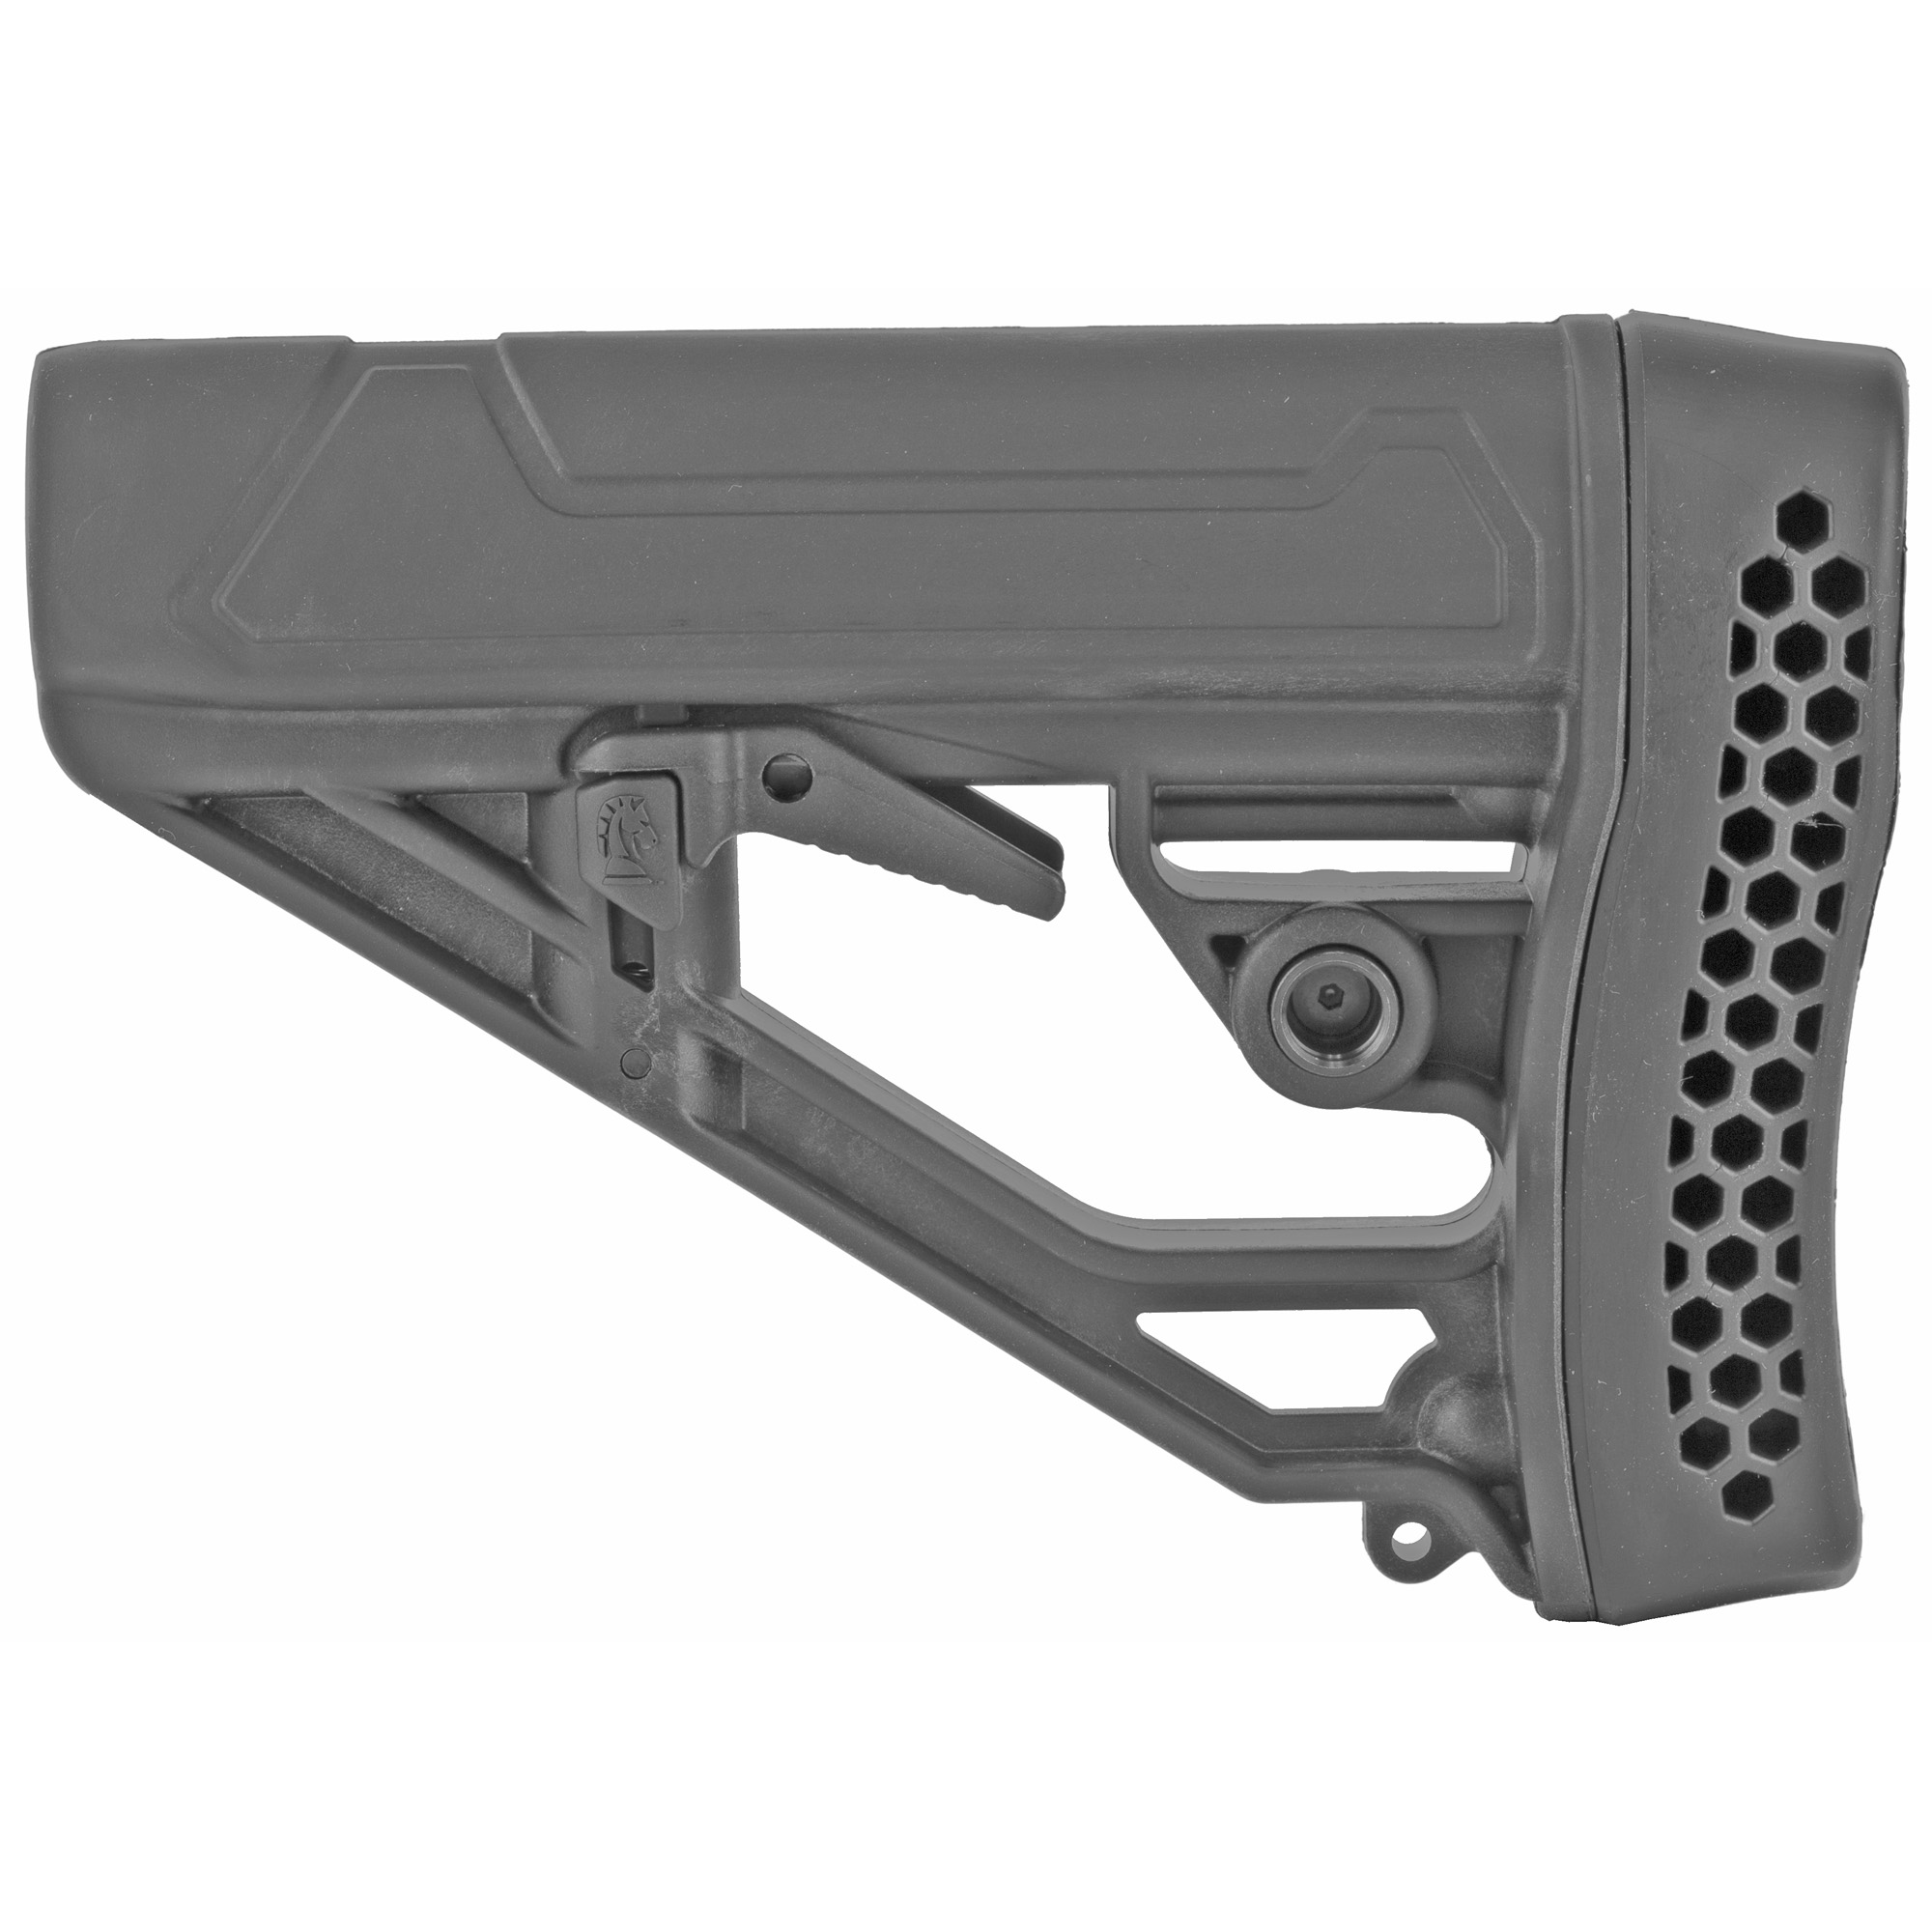 "The Adaptive Tactical EX Performance adjustable M-4 Style stock for AR15/AR10 Carbines with its advanced design and high-impact polymer construction make it the ideal upgrade for your AR15 or AR10. The EX Performance M4-style Stock features an easy-to-reach rapid adjust lever for custom length-of-pull"" and includes an integrated QD swivel attachment and molded in non-rust standard sling swivel attachment. Durable polymer construction with non-slip vented rubber recoil pad"" oversized extra strength adjustment pin"" and sleek industrial design."